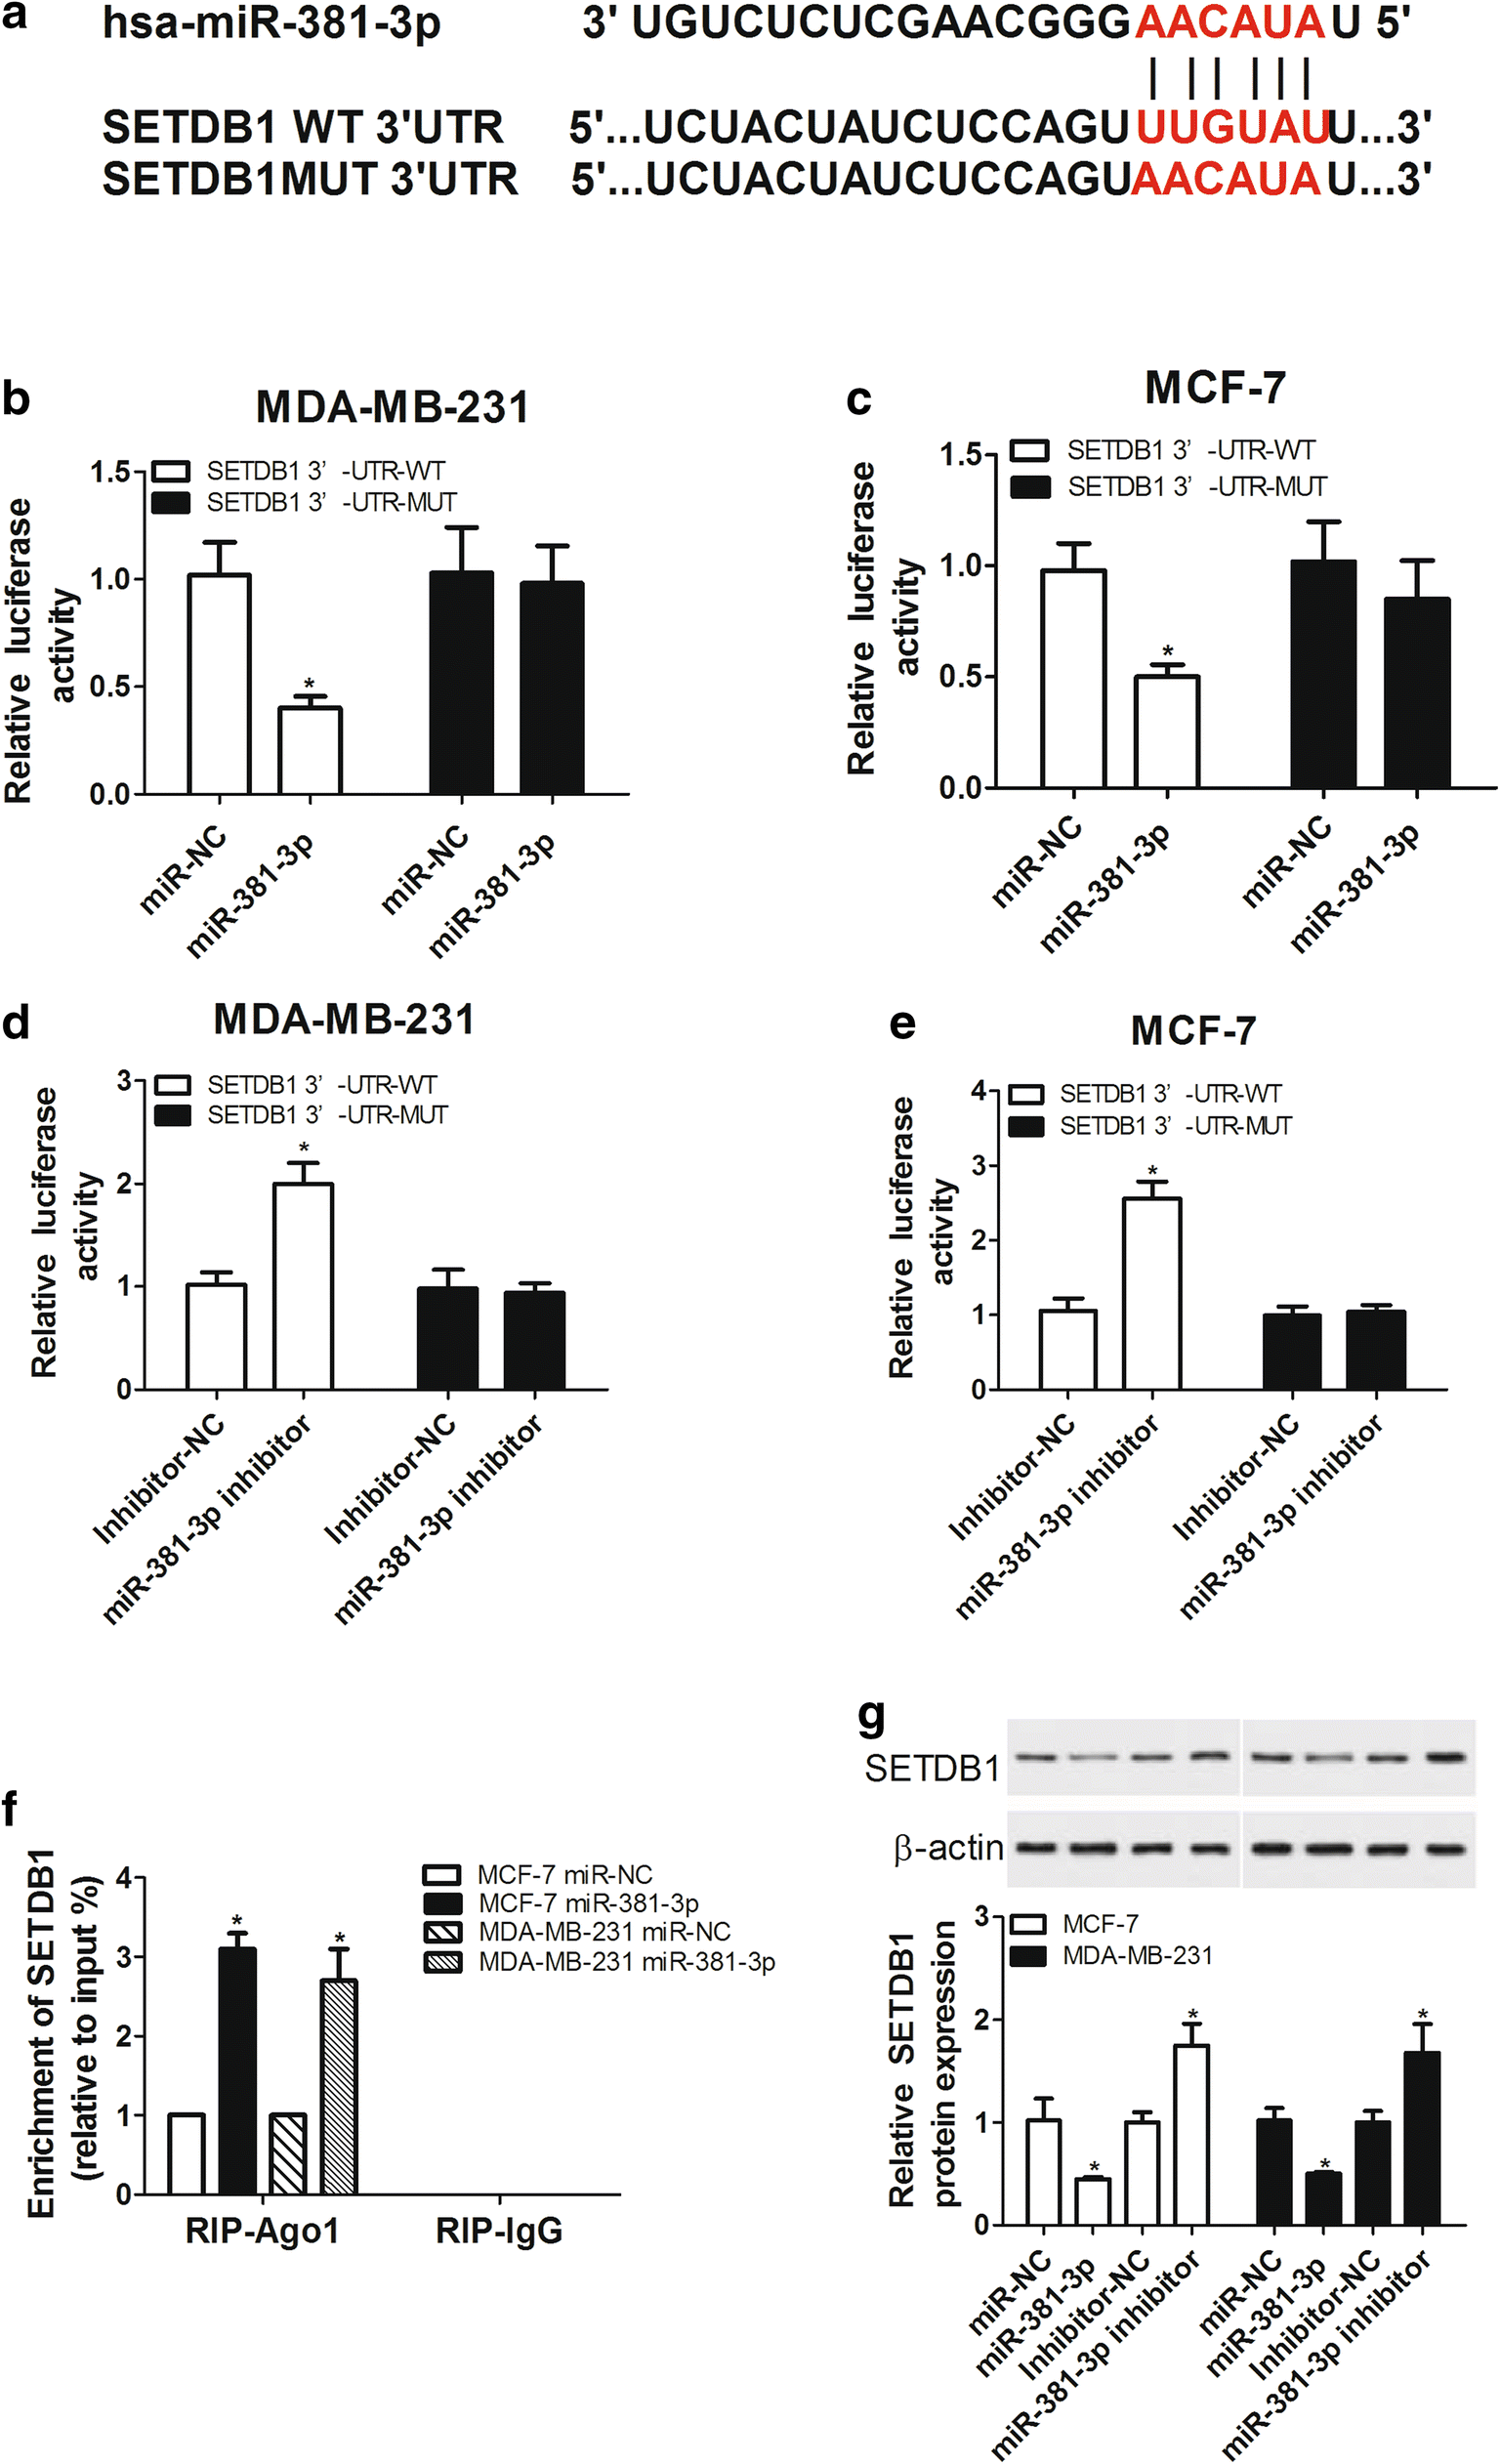 Knockdown Of Setdb1 Inhibits Breast Cancer Progression By Mir 381 3p Counter Using 7 Segment Display Public Circuit Online Fig 4